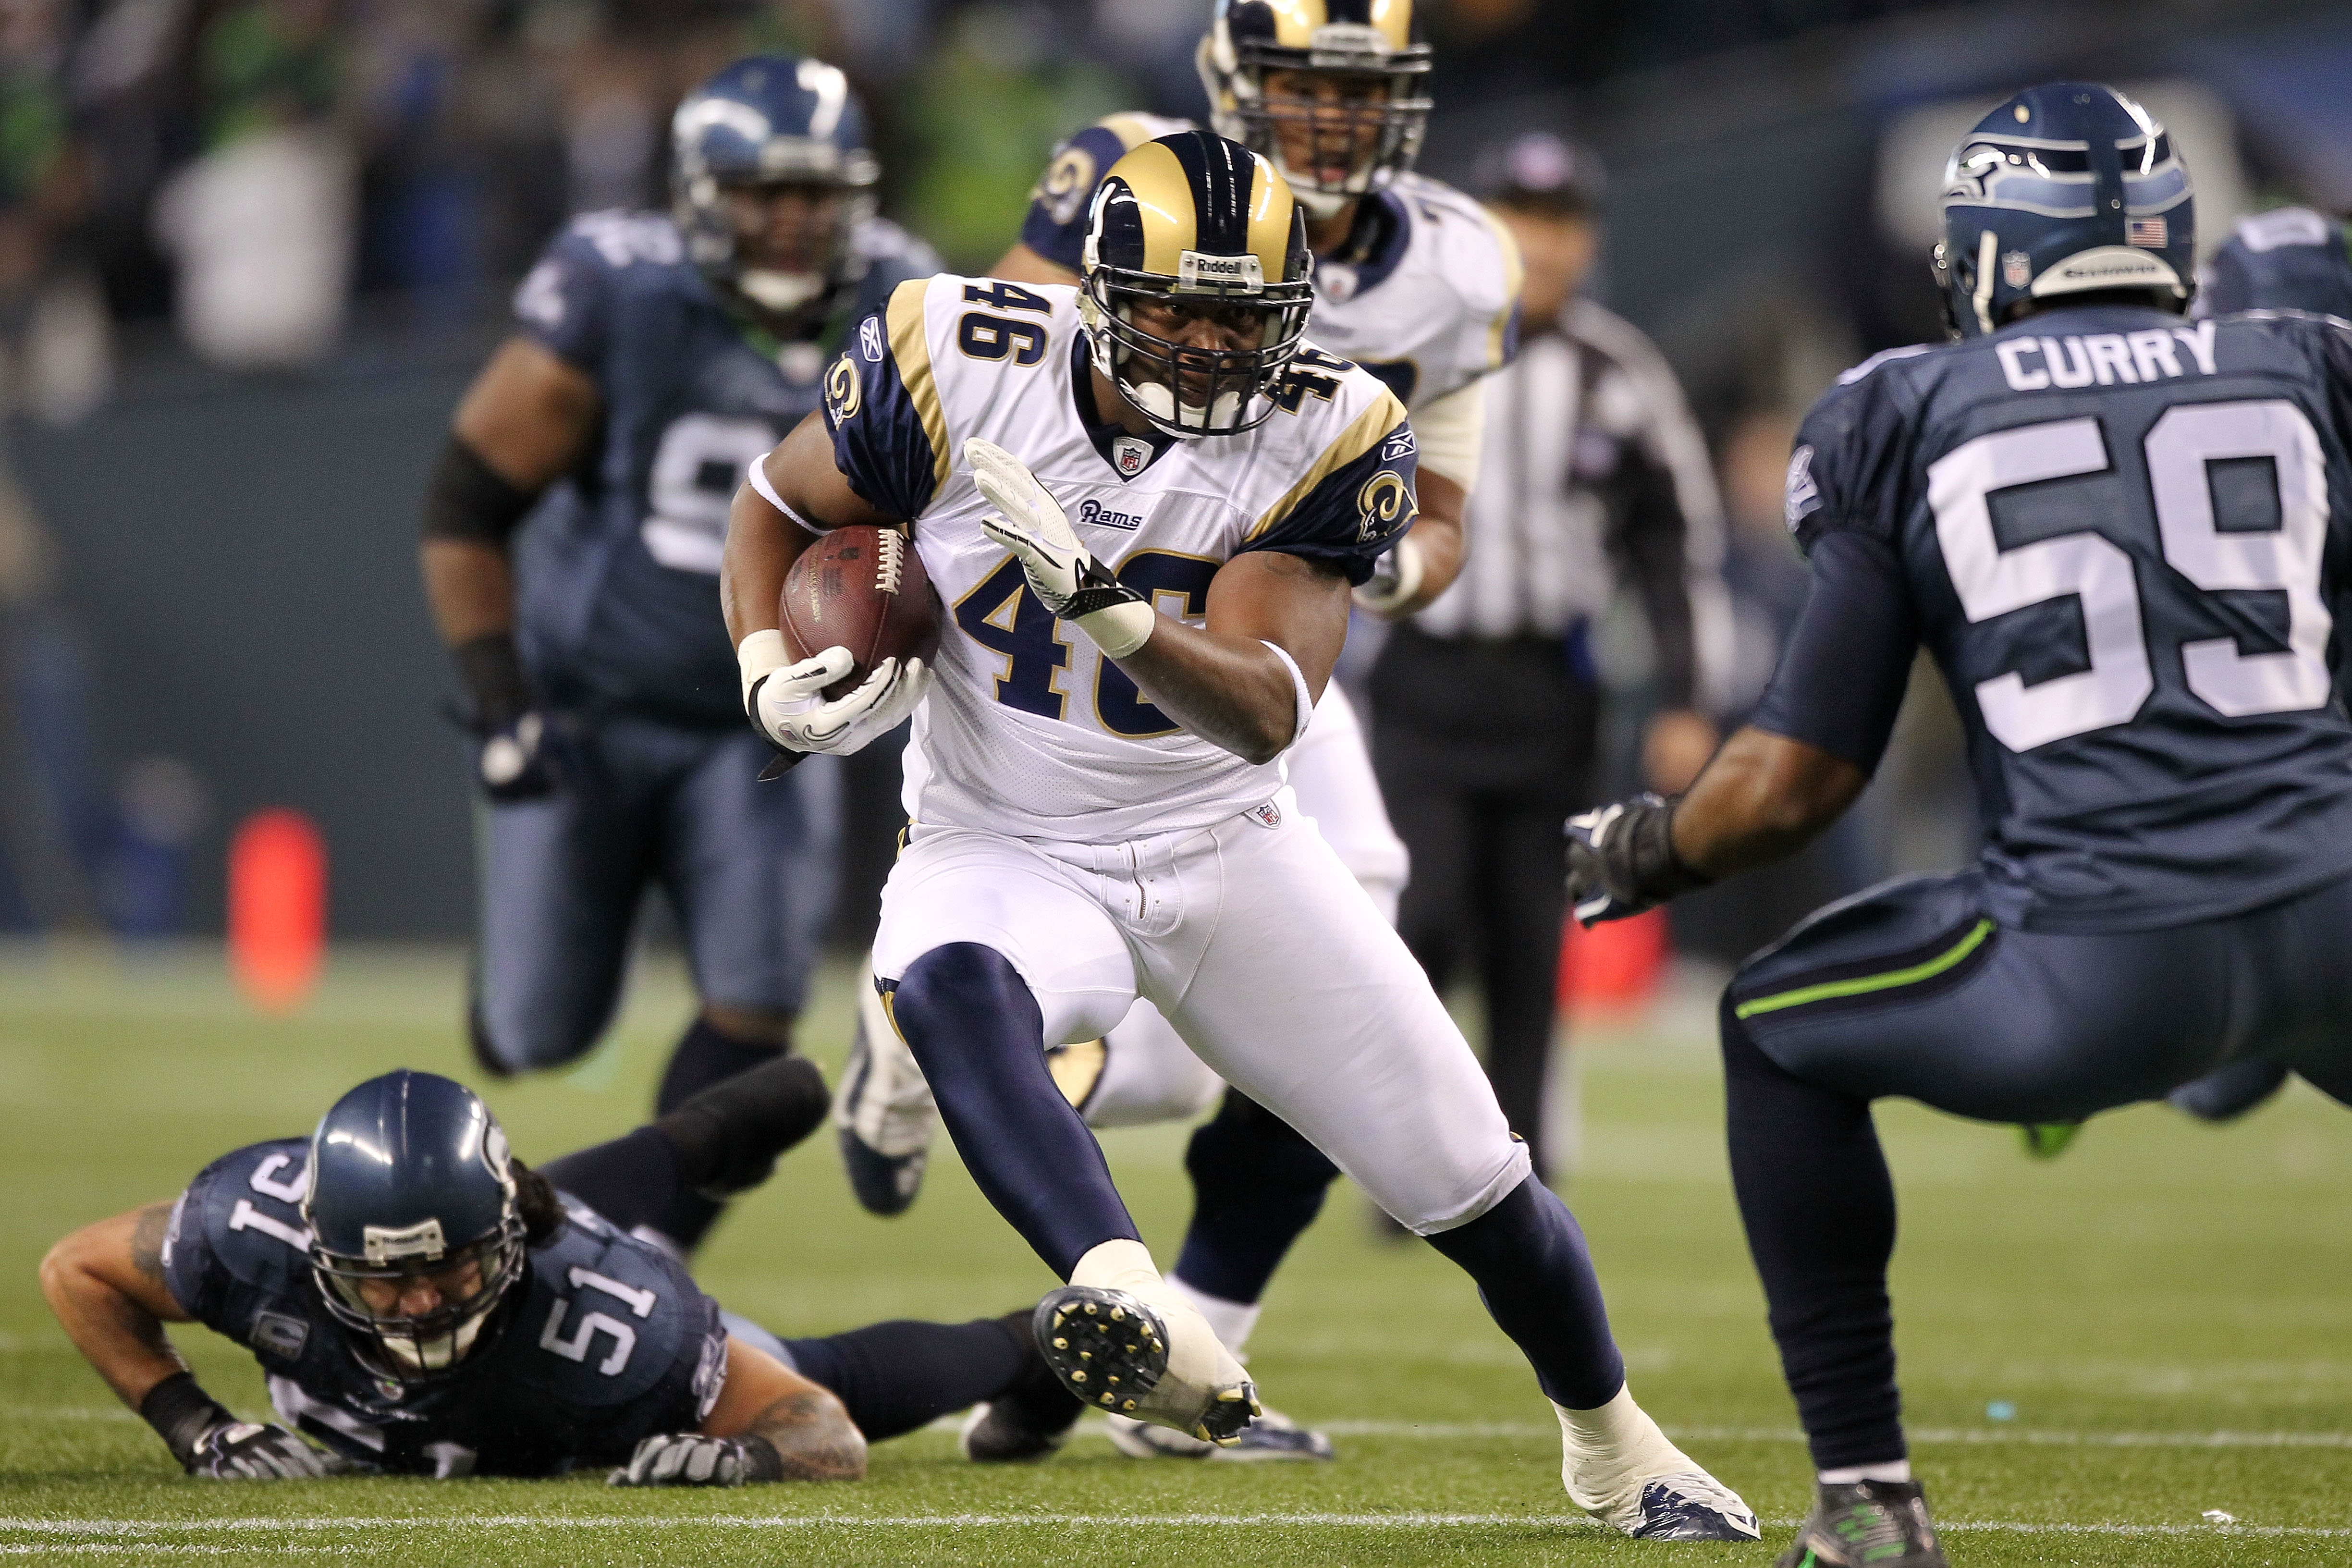 SEATTLE, WA - JANUARY 02:  Tight end Daniel Fells #46 of the St. Louis Rams runs with the ball after a catch as linebacker Aaron Curry #59 of the Seattle Seahawks defends during their game at Qwest Field on January 2, 2011 in Seattle, Washington.  (Photo